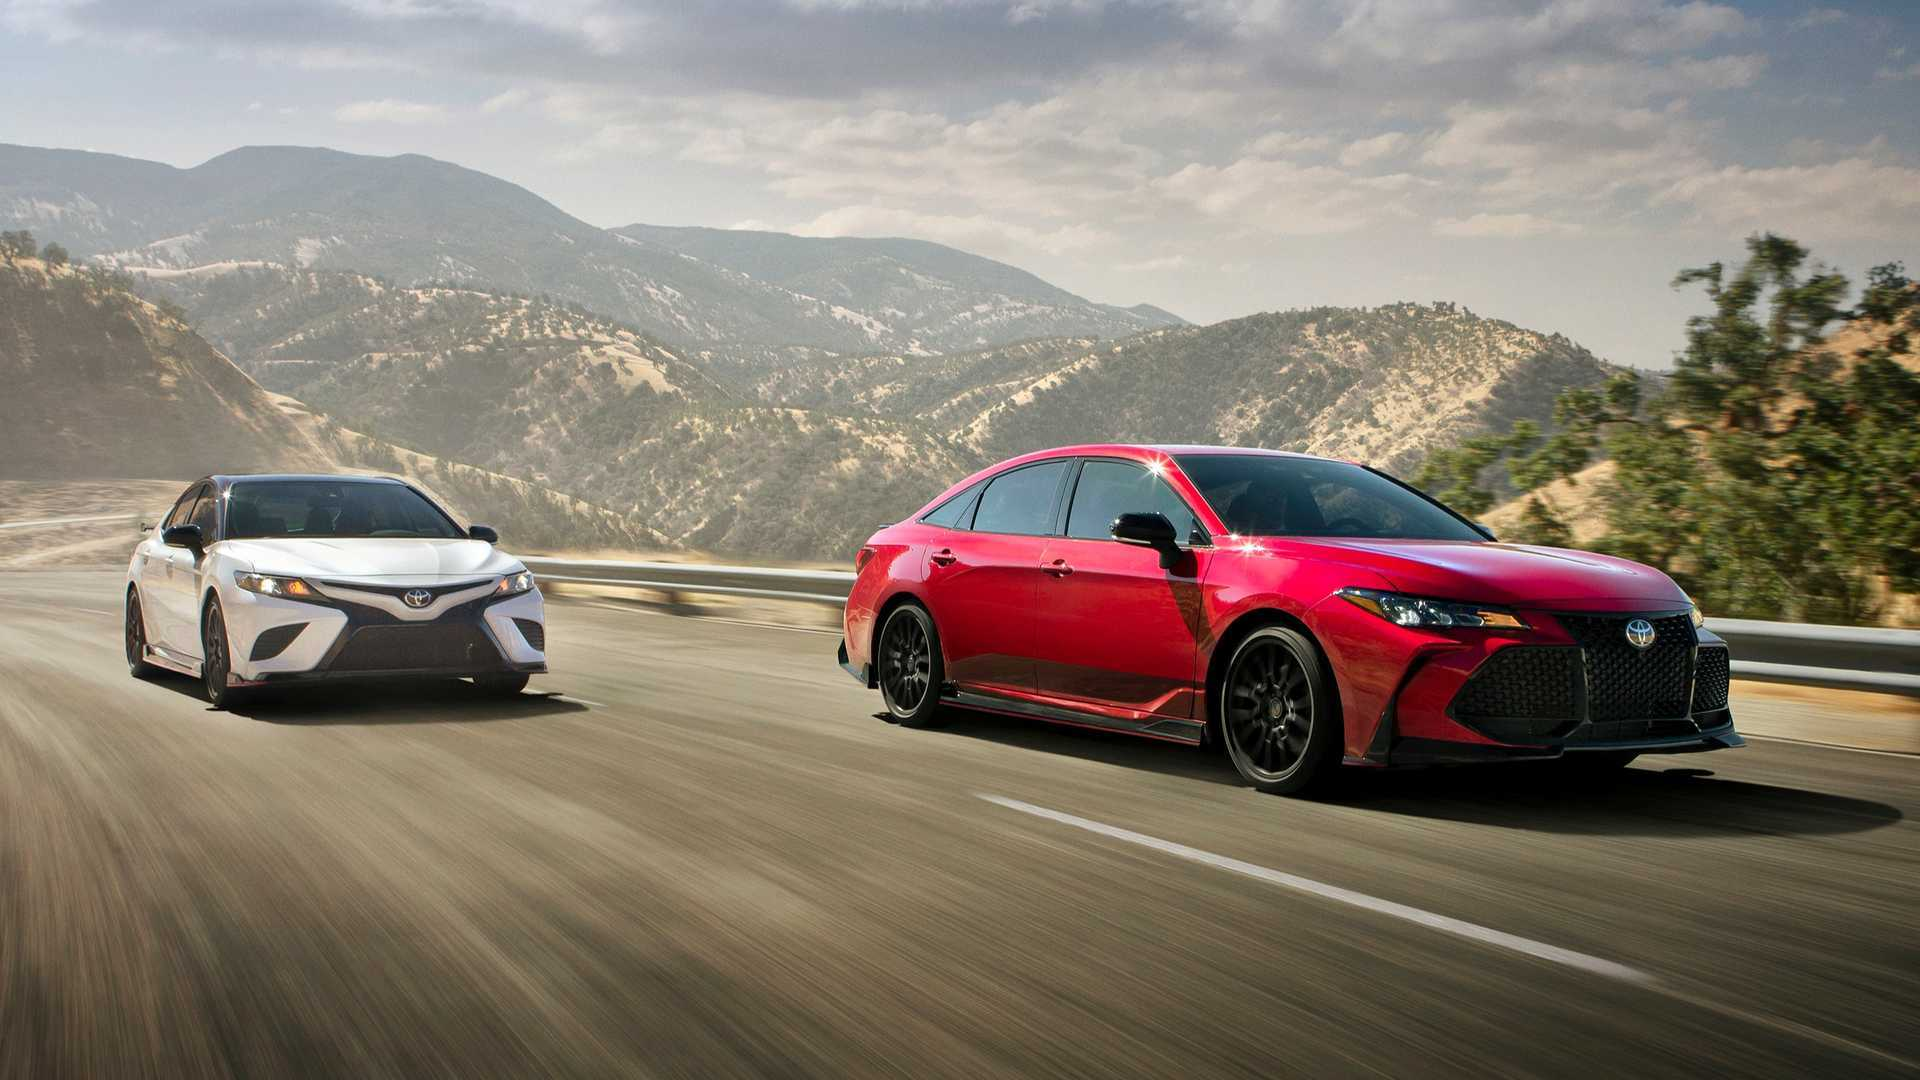 40 Concept of 2020 Toyota Camry Exterior with 2020 Toyota Camry